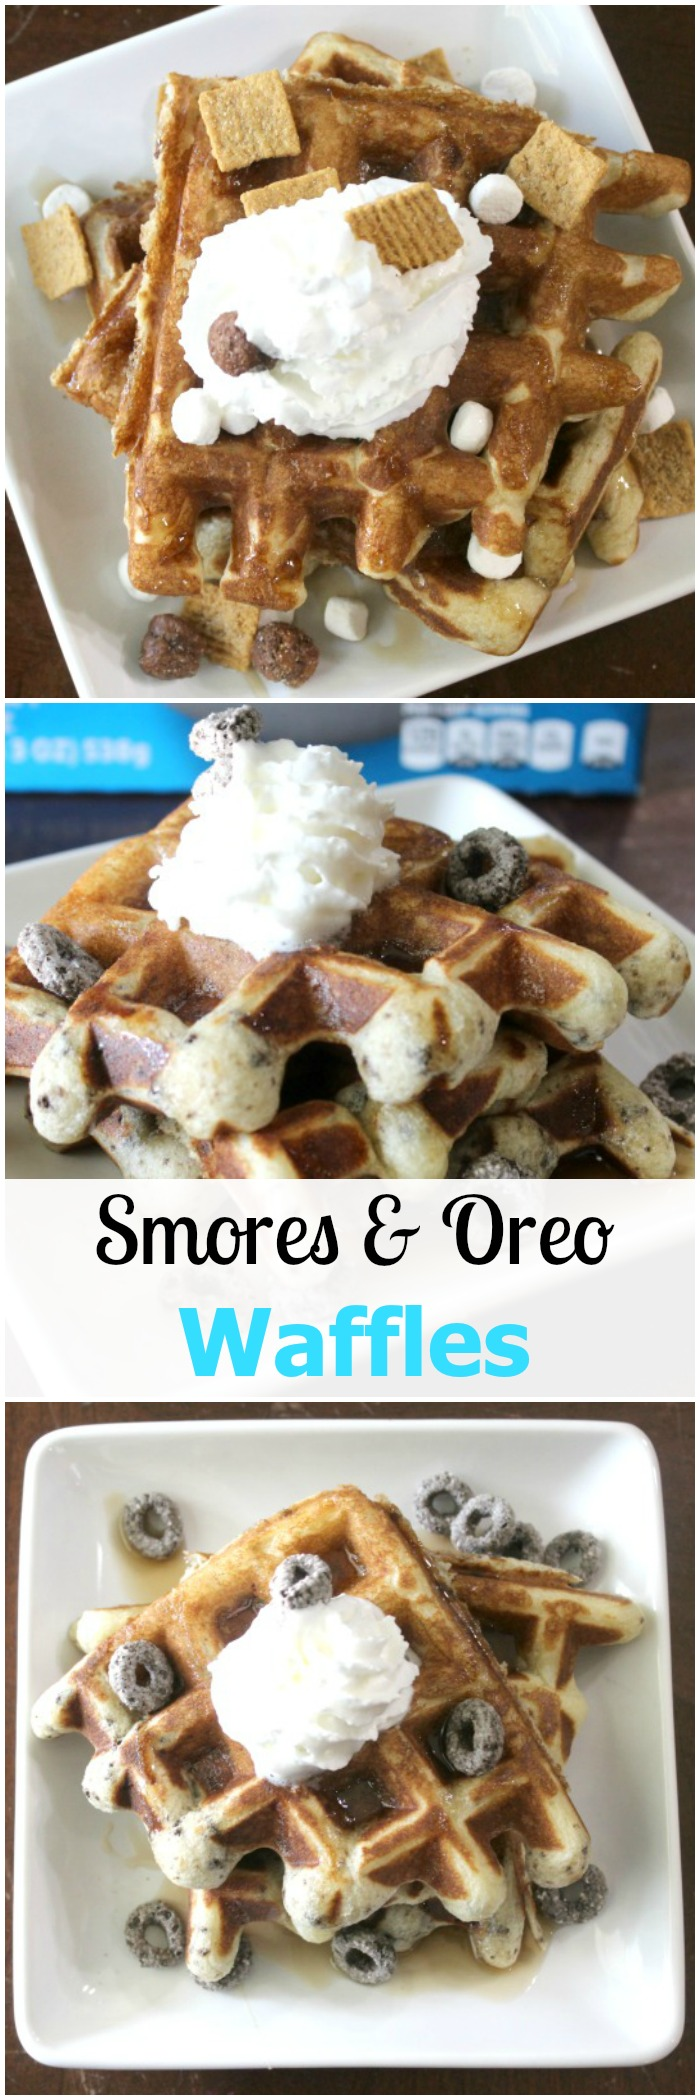 See how easy it is to make Smores Waffles and Oreo Waffles topped with whipped topping for a fun breakfast your kids (and husband) will love!